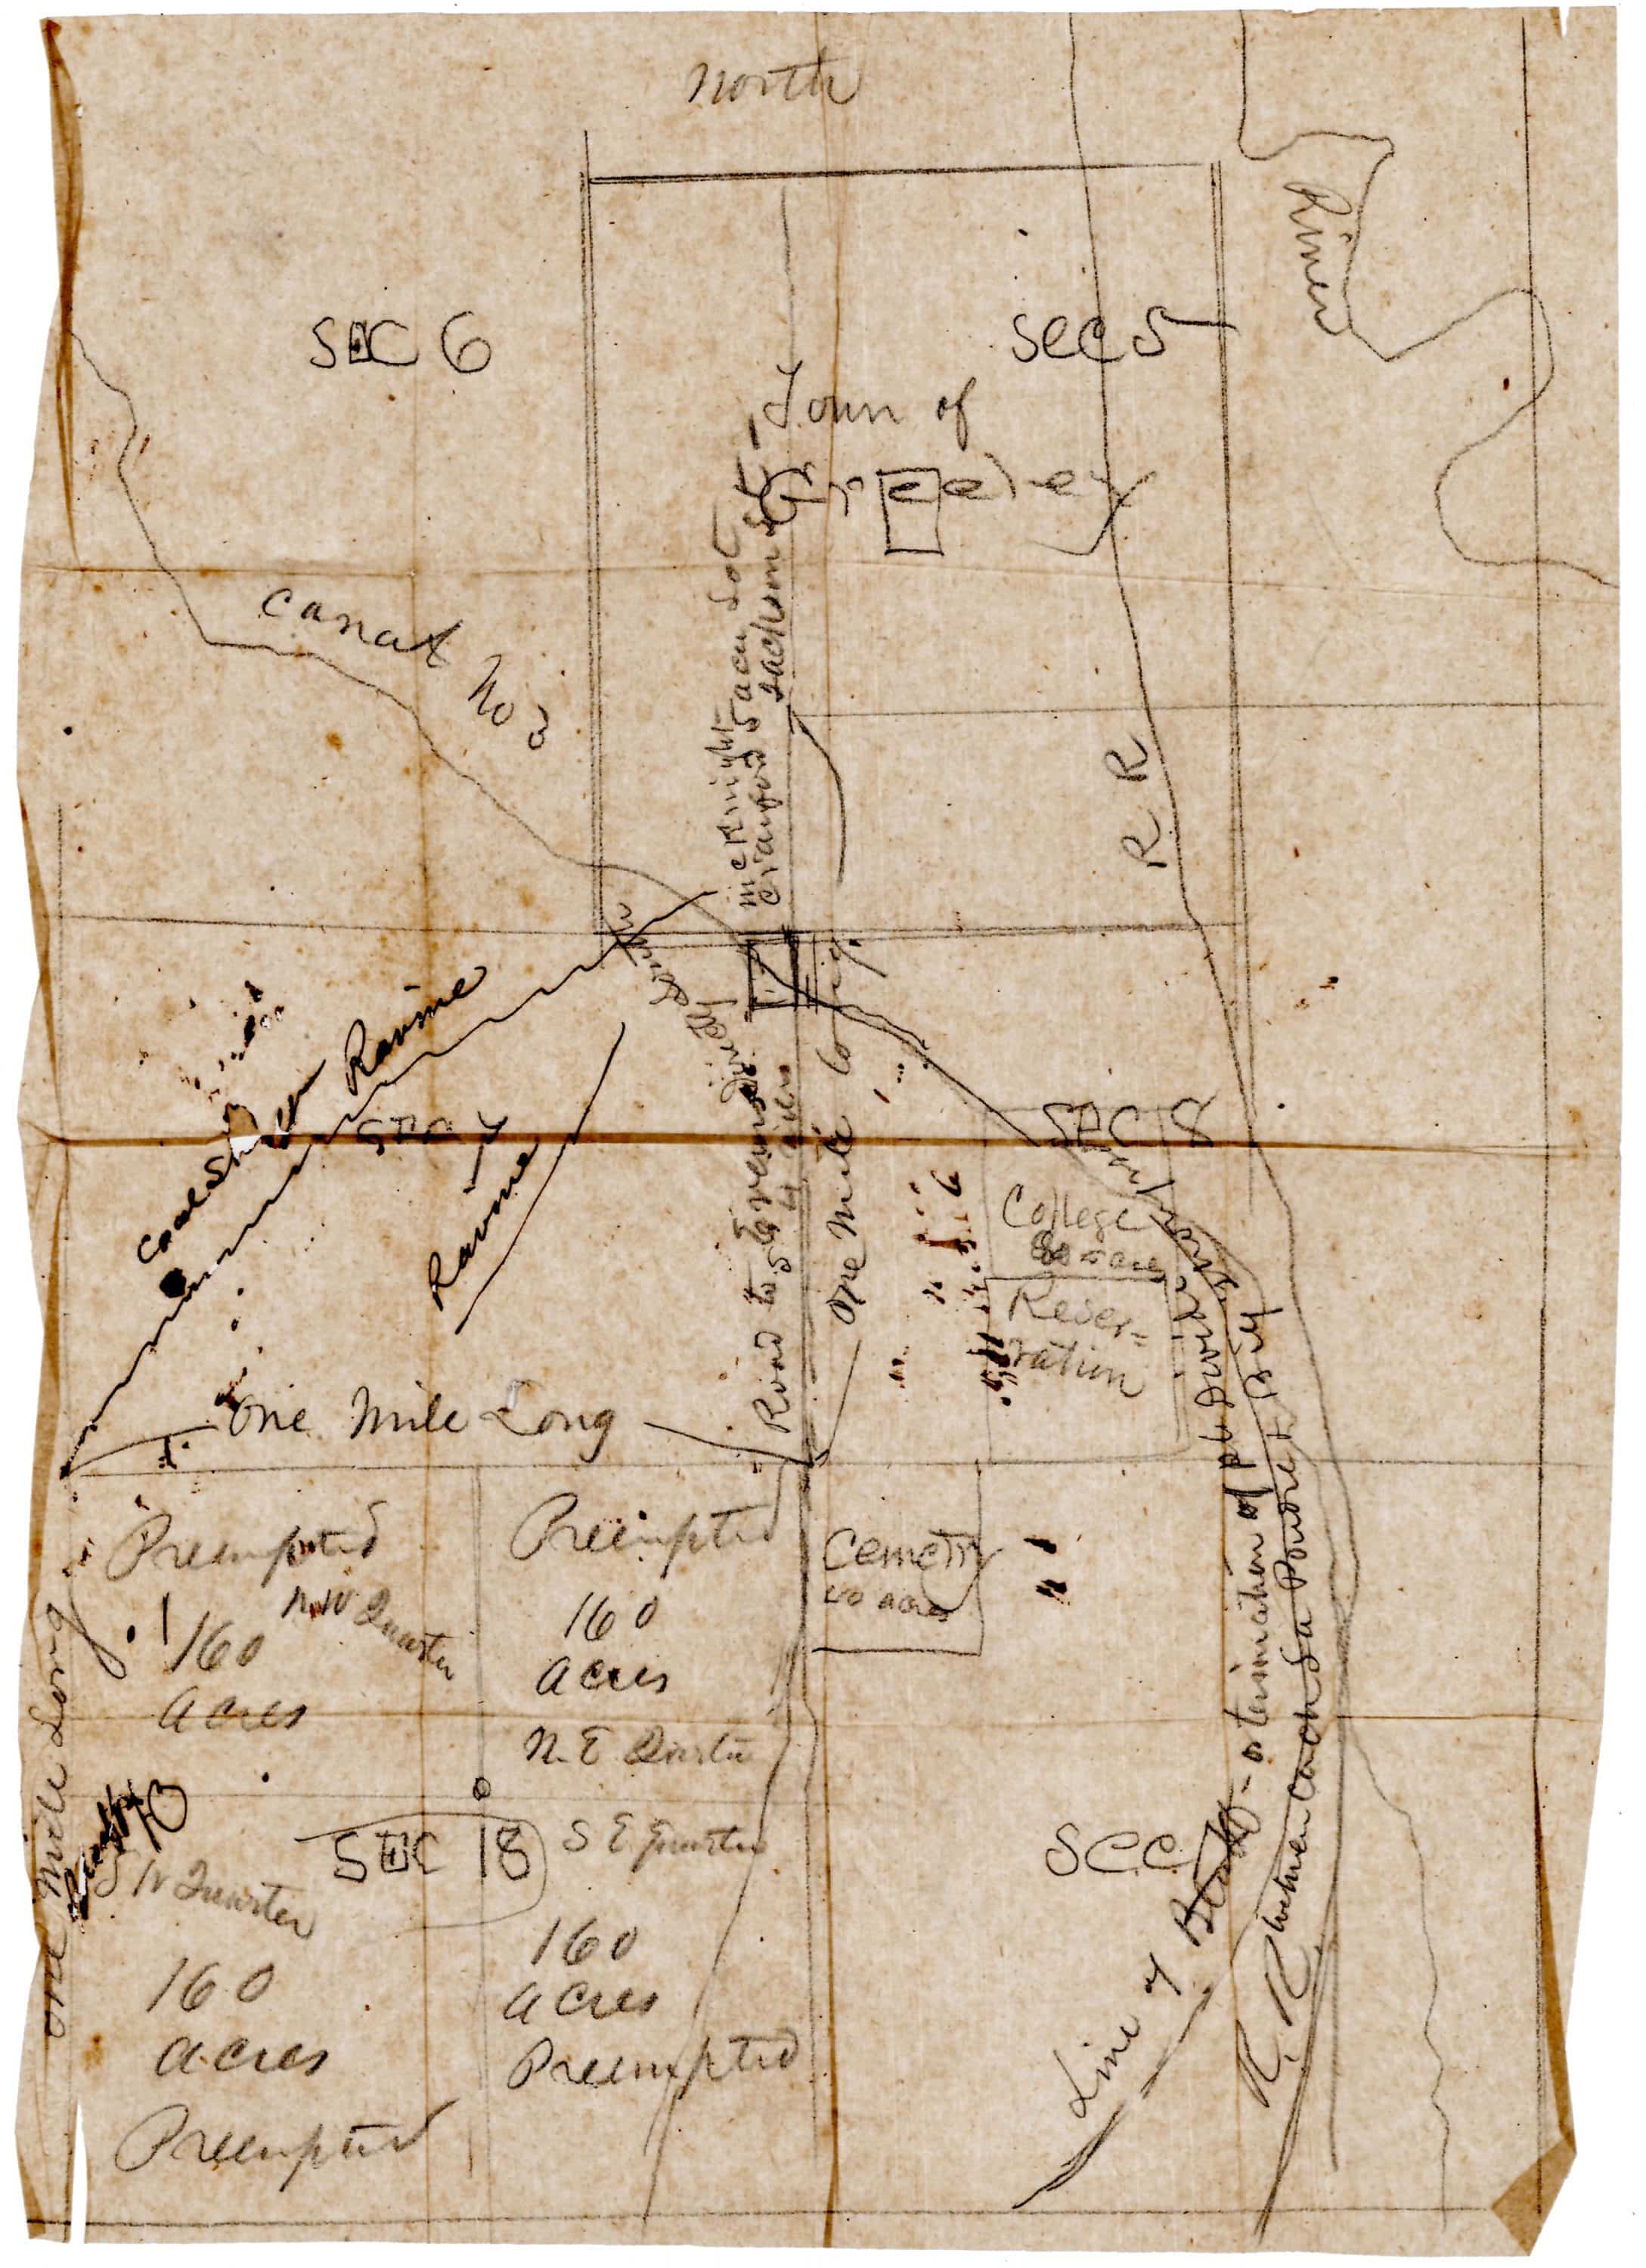 Archive of maps and letters from the earliest years of the Union